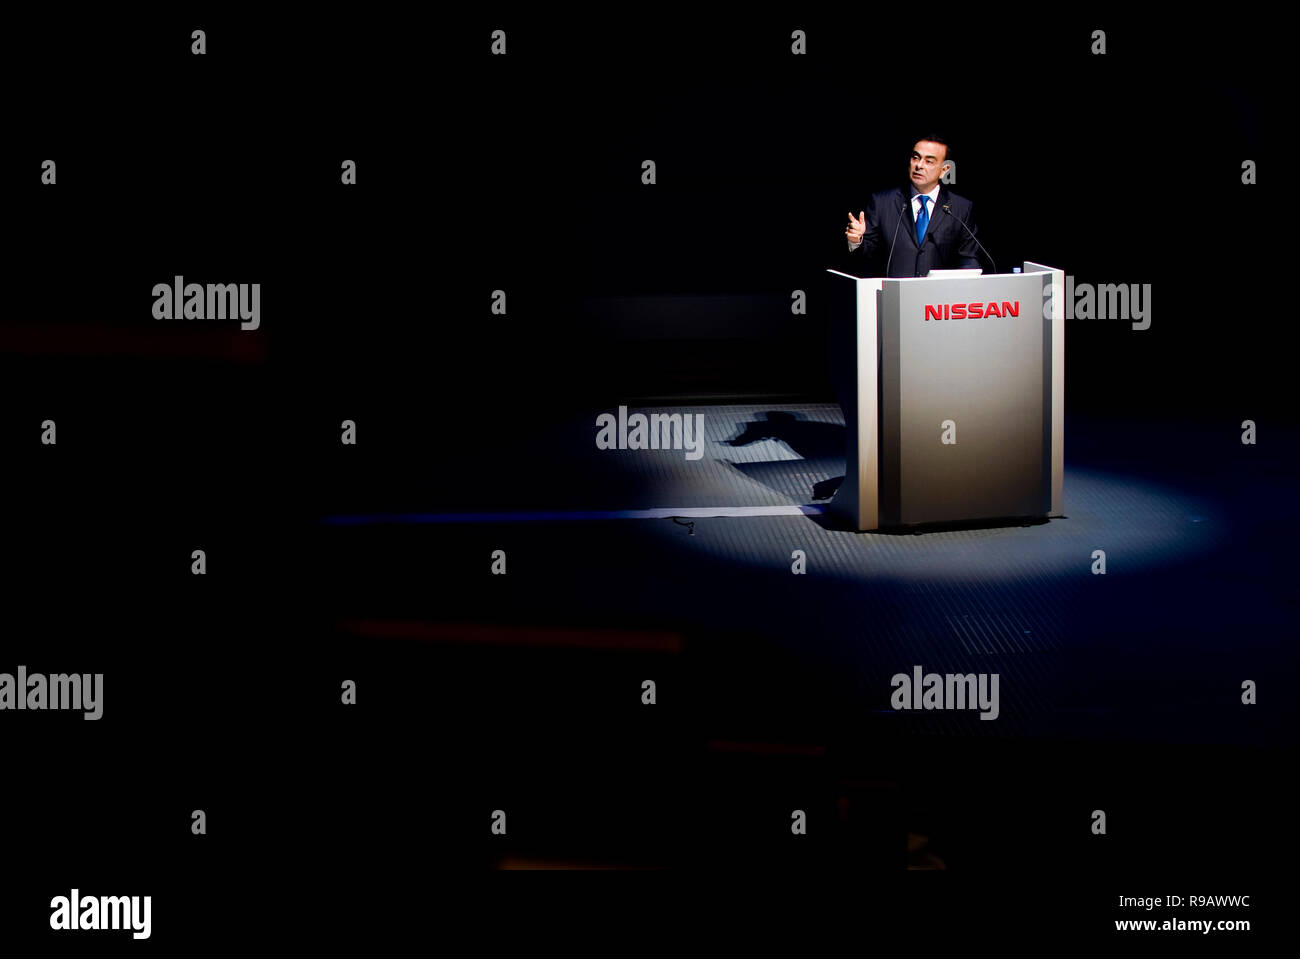 Carlos Ghosn, former president and CEO of Nissan Motor Co., gives a speech at the automaker's HQ in Yokohama, Kanagawa Prefecture, Japan on  19 Oct. 2 - Stock Image